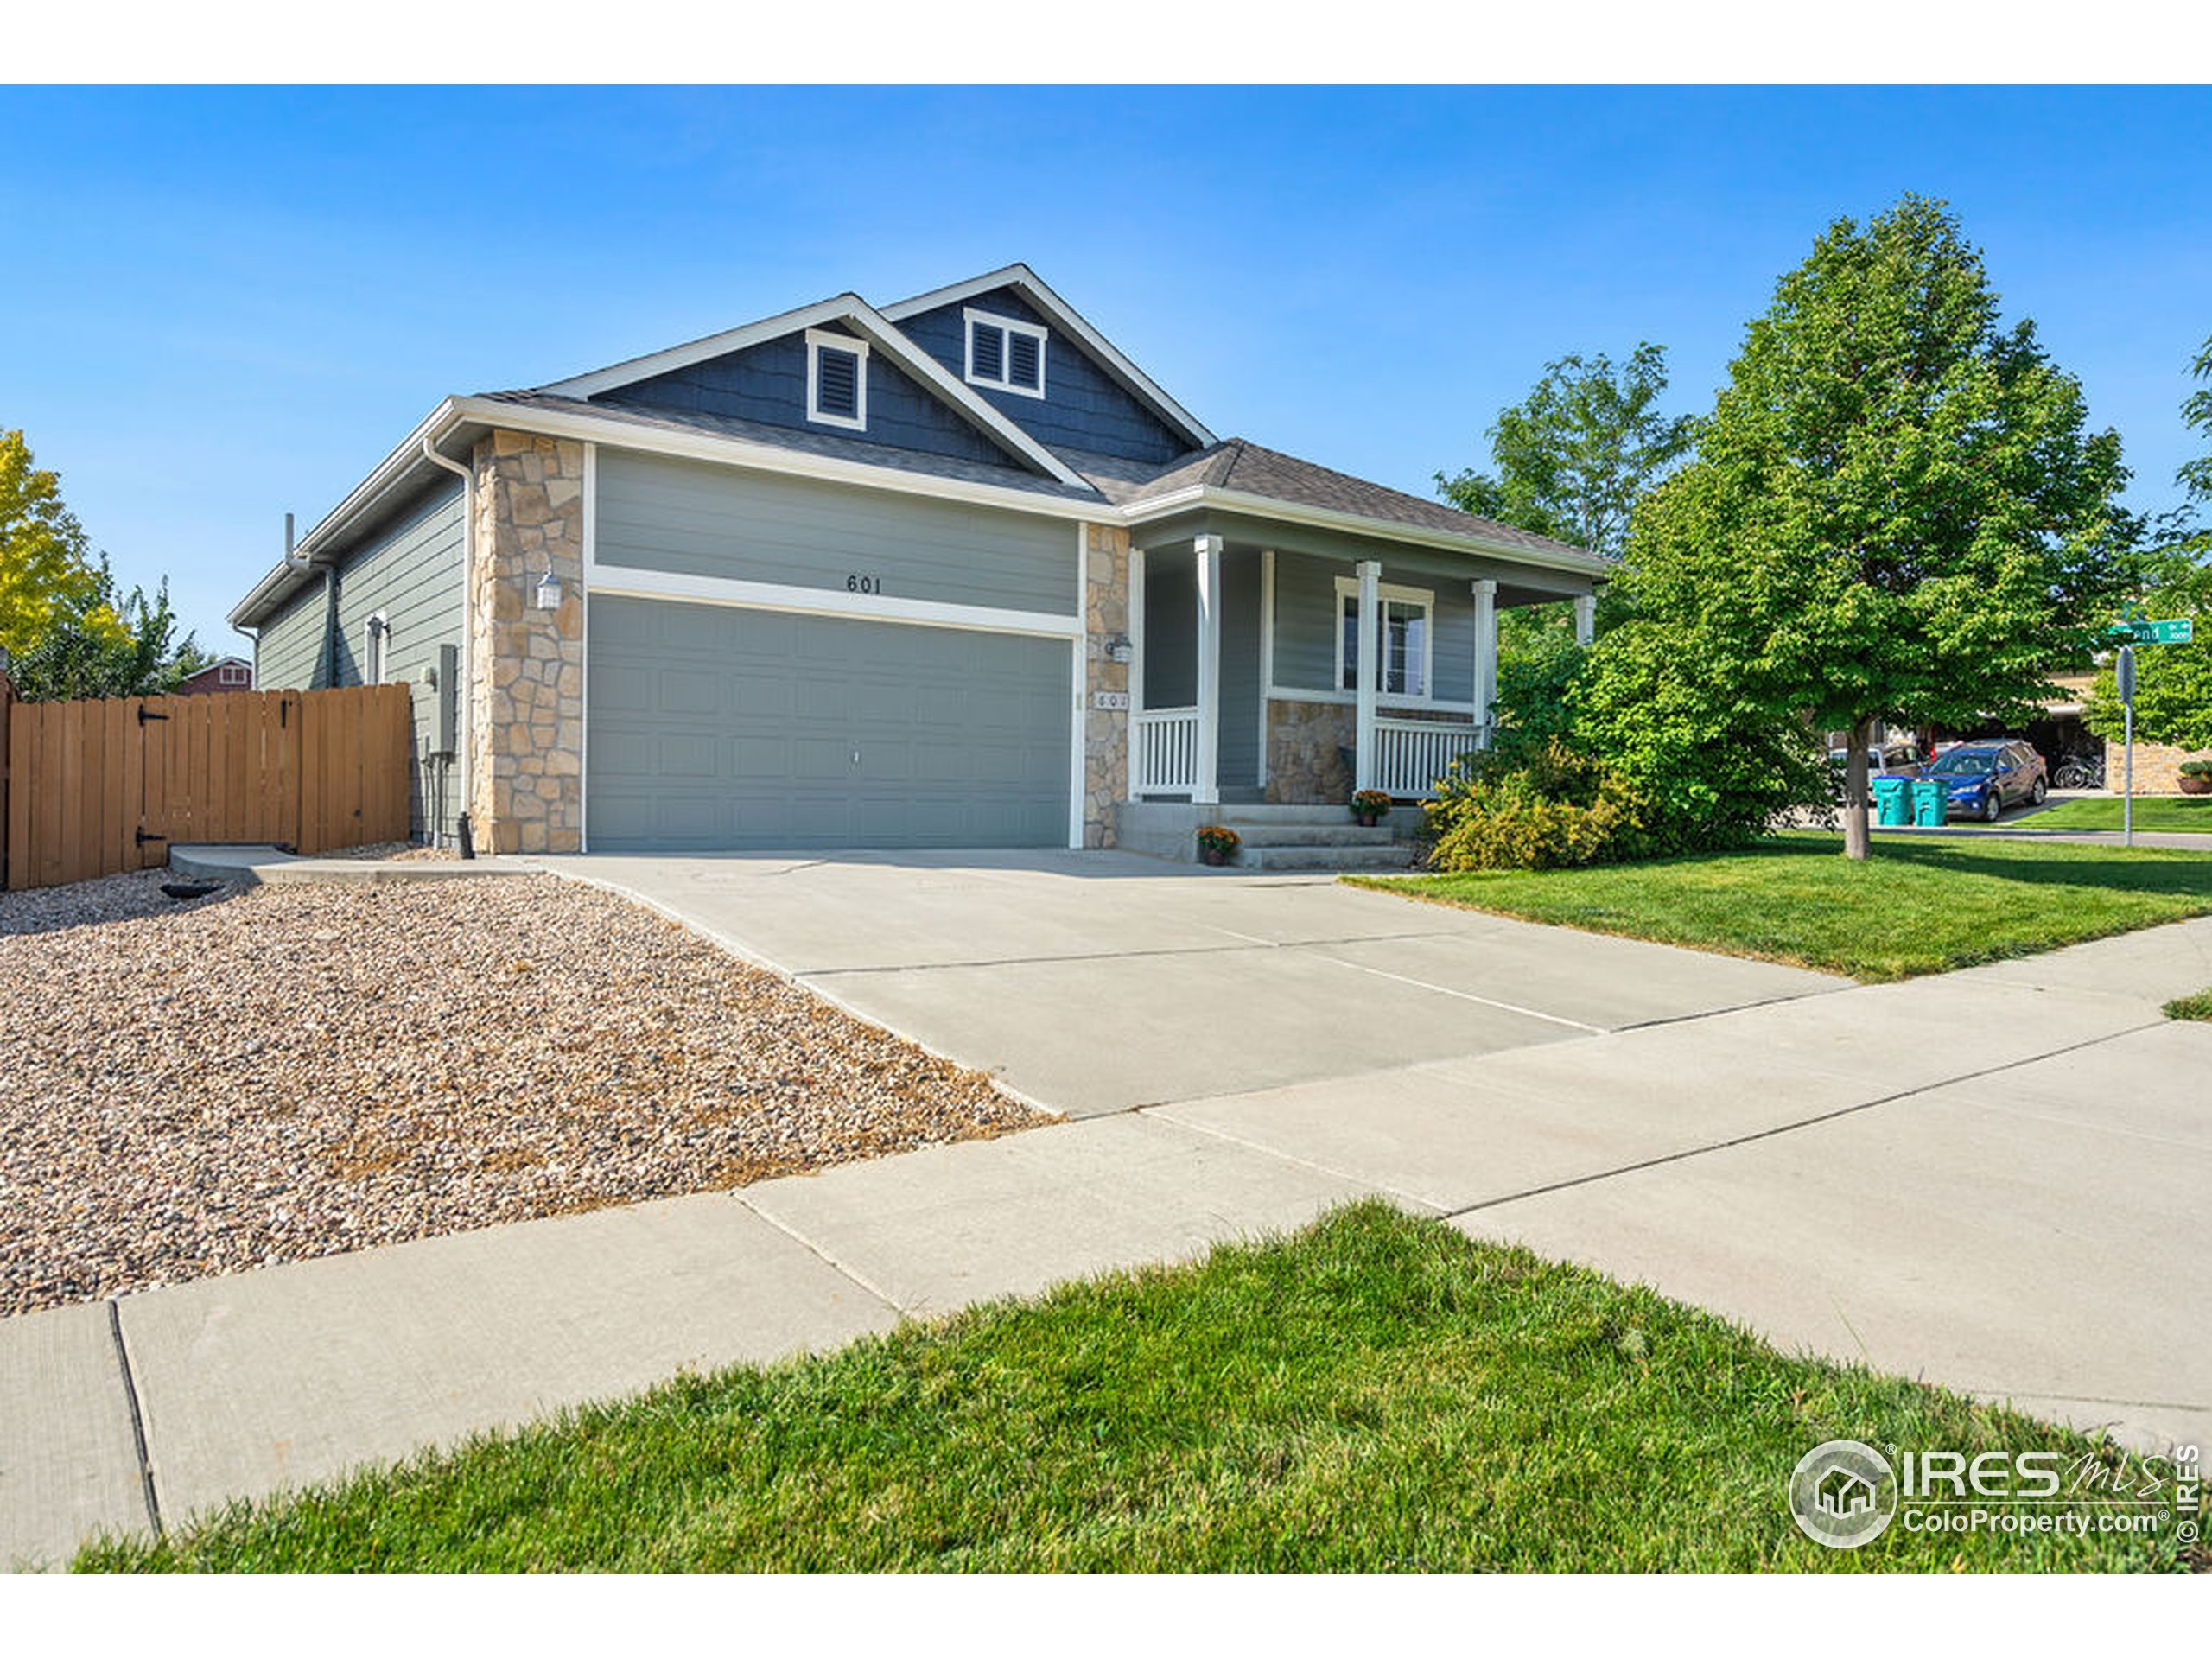 601 Stoney Brook Rd, Fort Collins, CO 80525